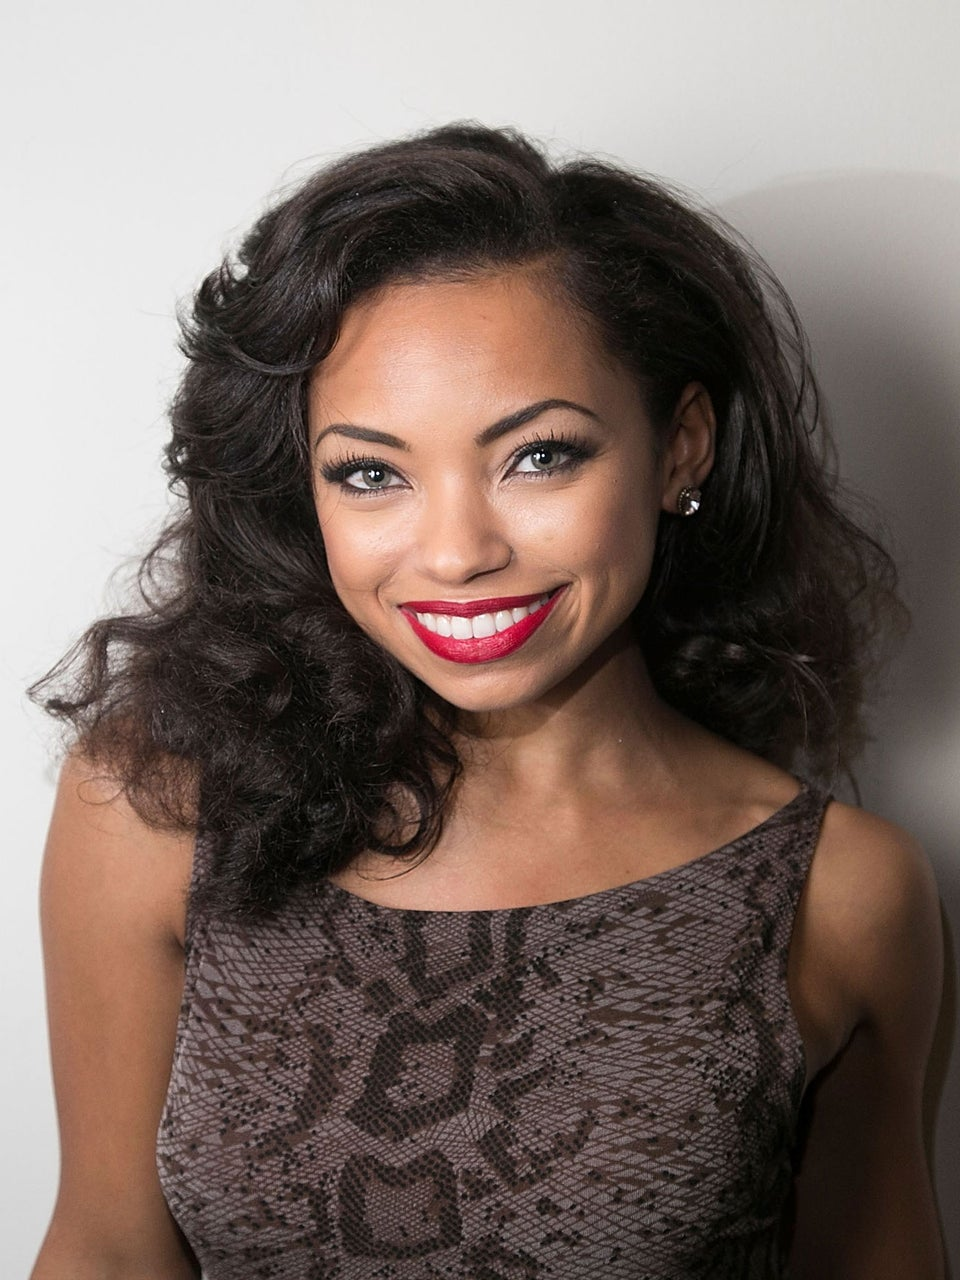 'Hit The Floor' Star Logan Browning Joins The Cast Of 'Dear White People' Netflix Series